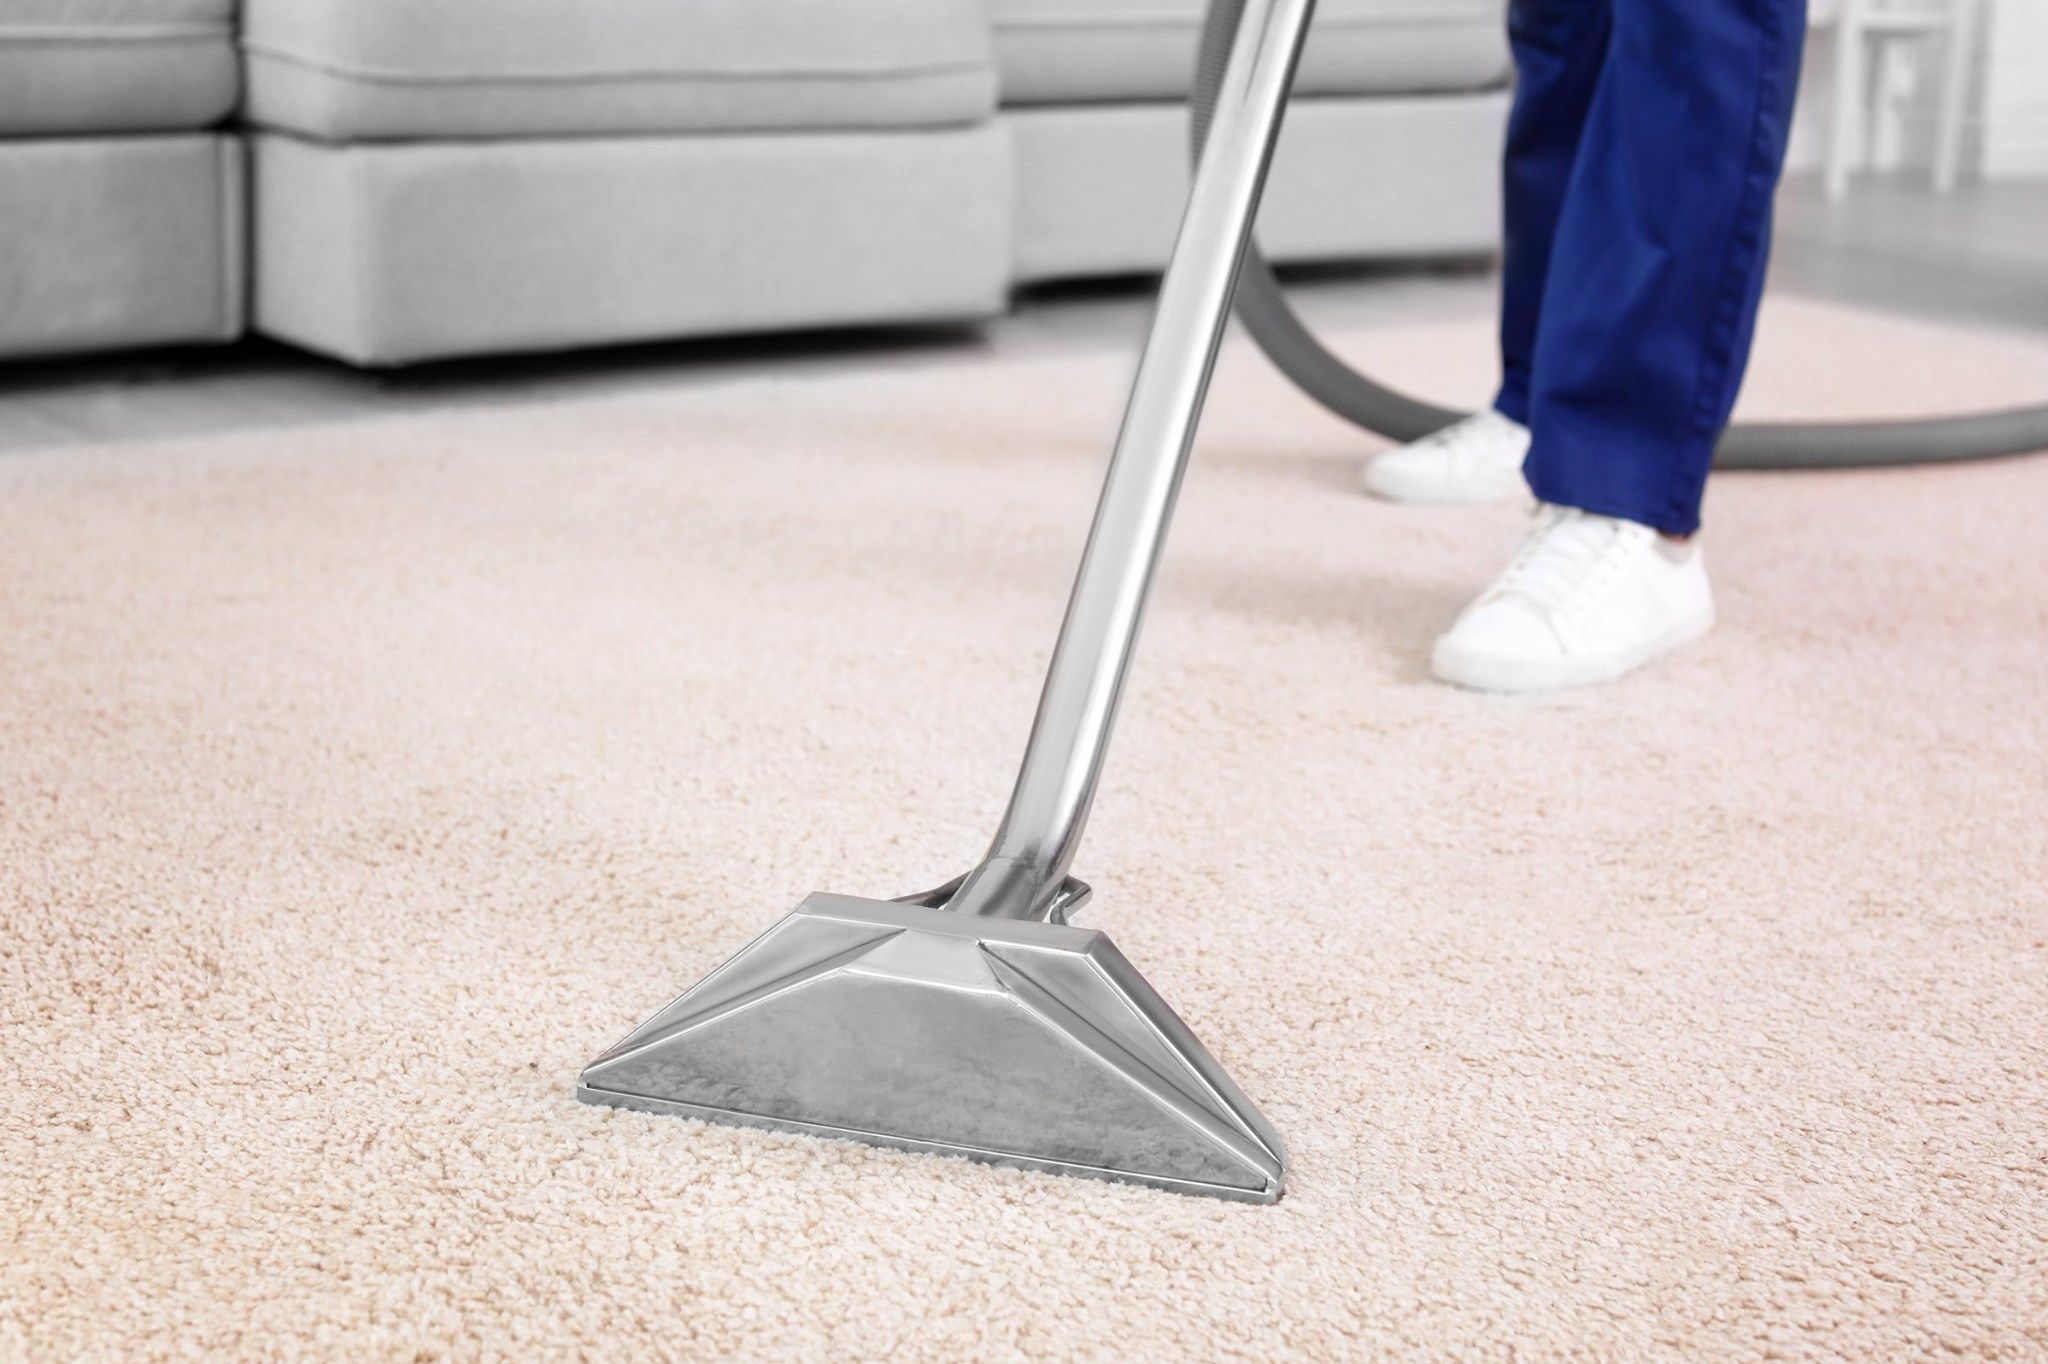 Have You Seen The Carpet Cleaning Services Servicemaster Of The Upstate Provides Whether You A In 2020 How To Clean Carpet Carpet Cleaning Service Dry Carpet Cleaning